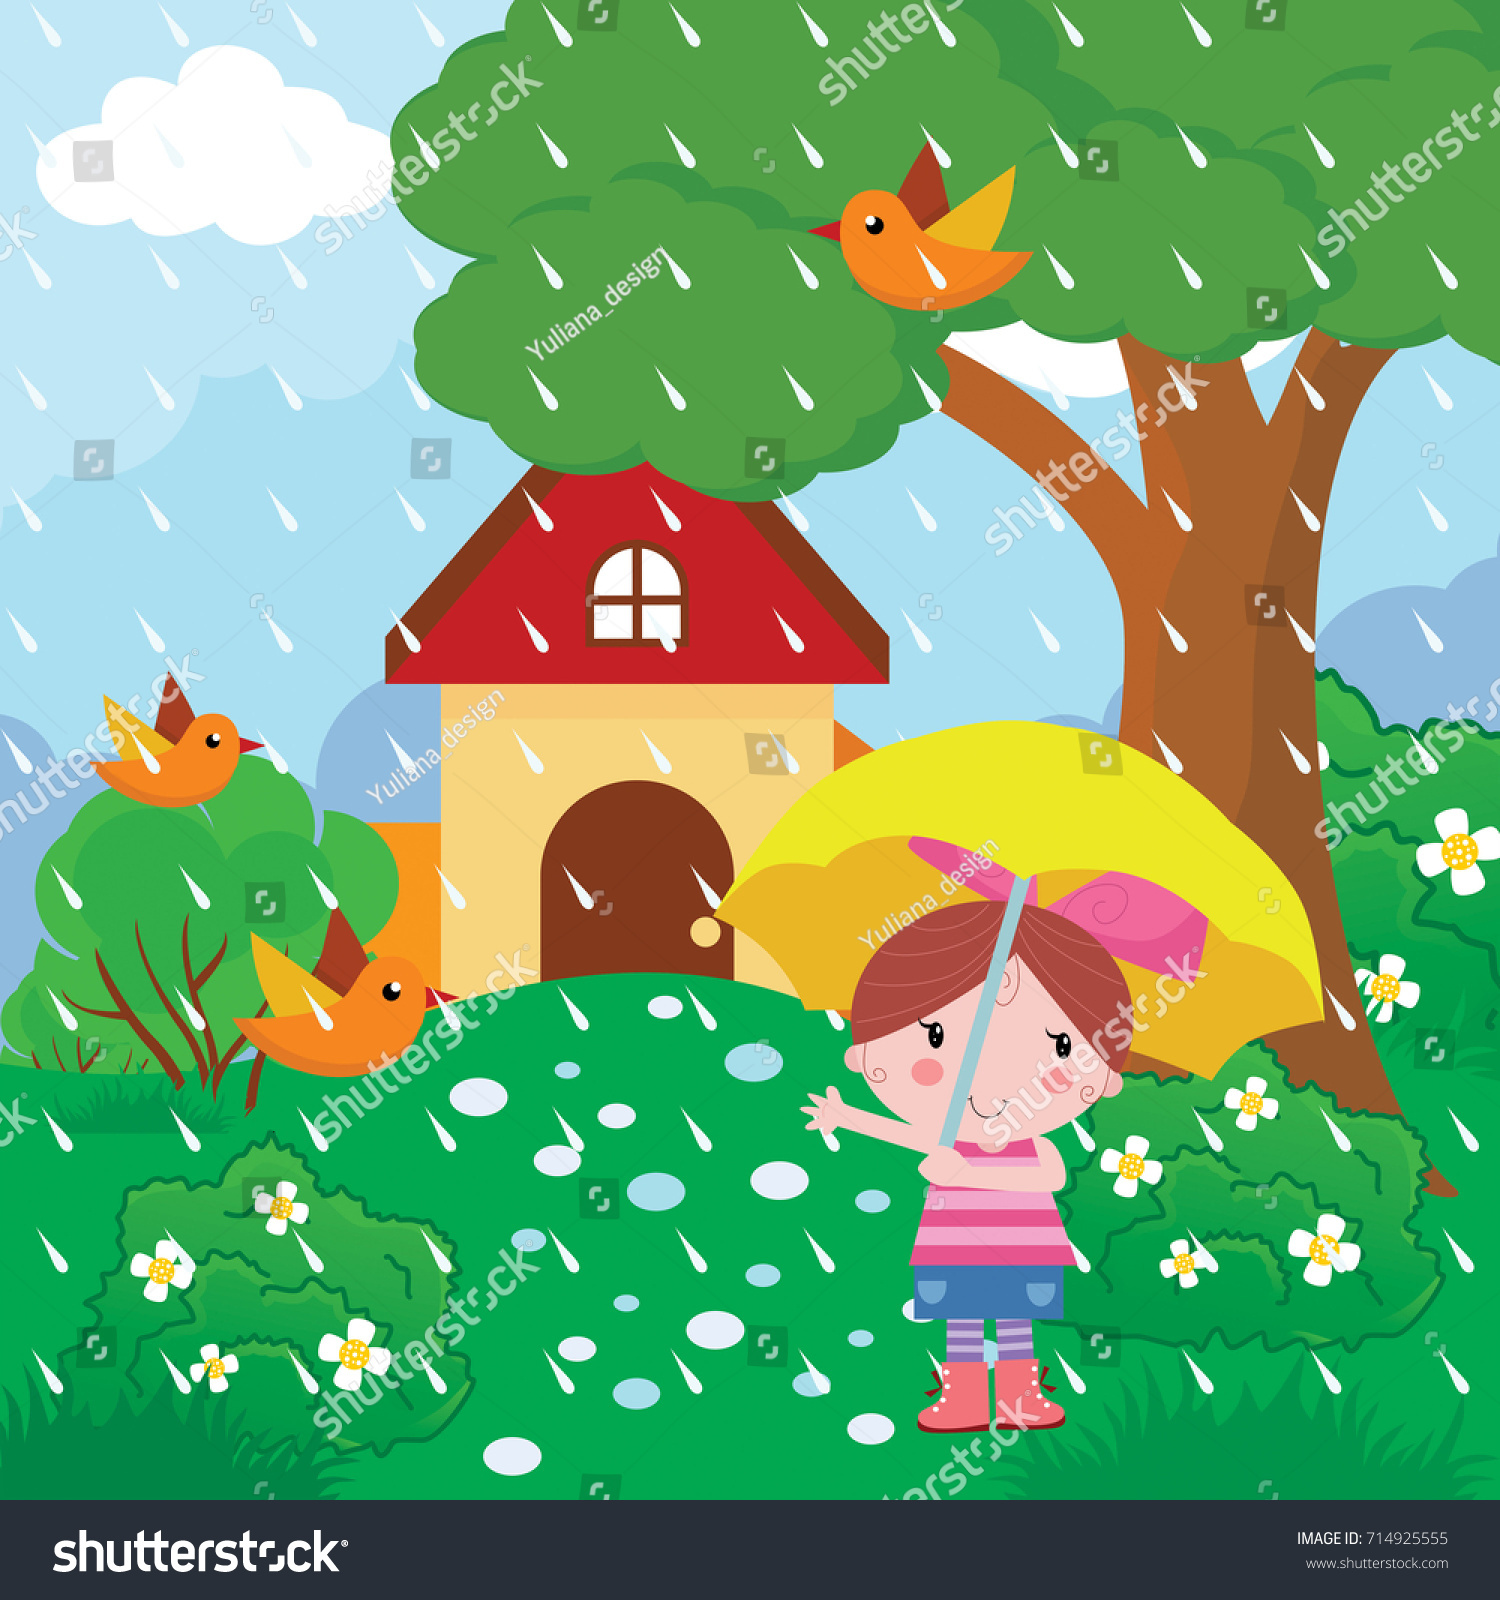 little girl outside the house when it rains with an umbrella cartoon